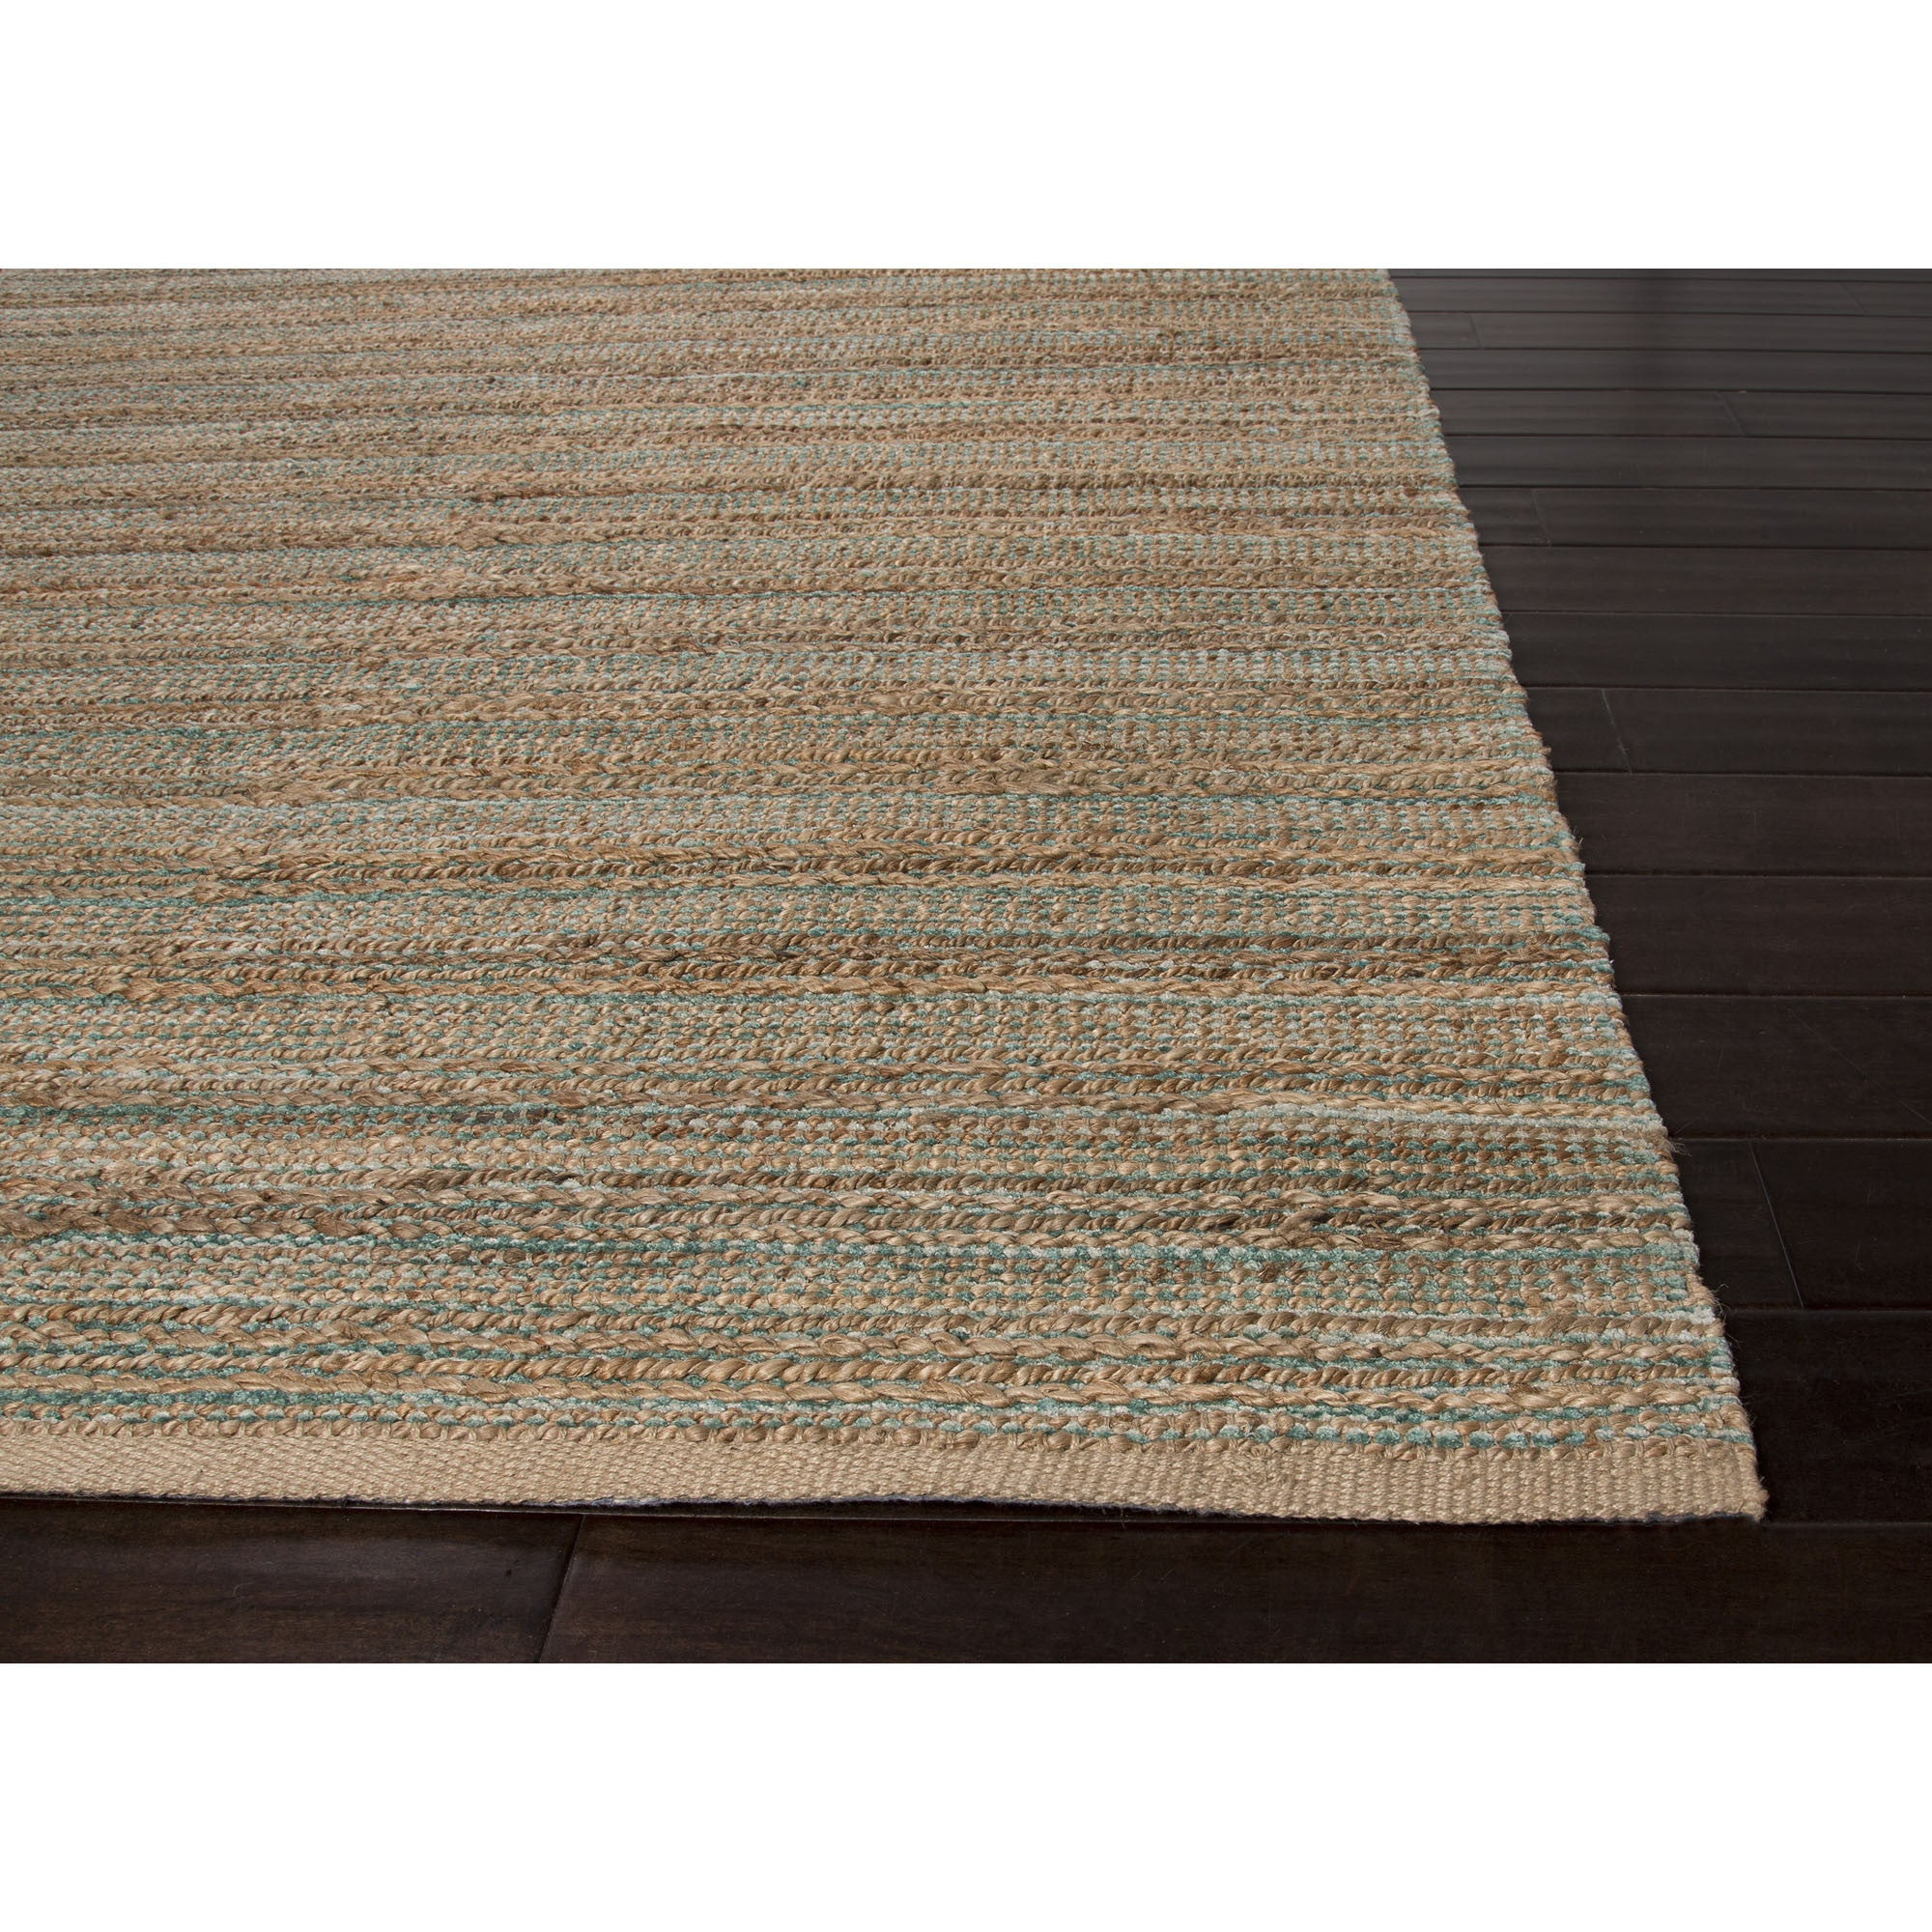 Jaipur Rugs Naturals Solid Pattern Taupe/Green Jute And